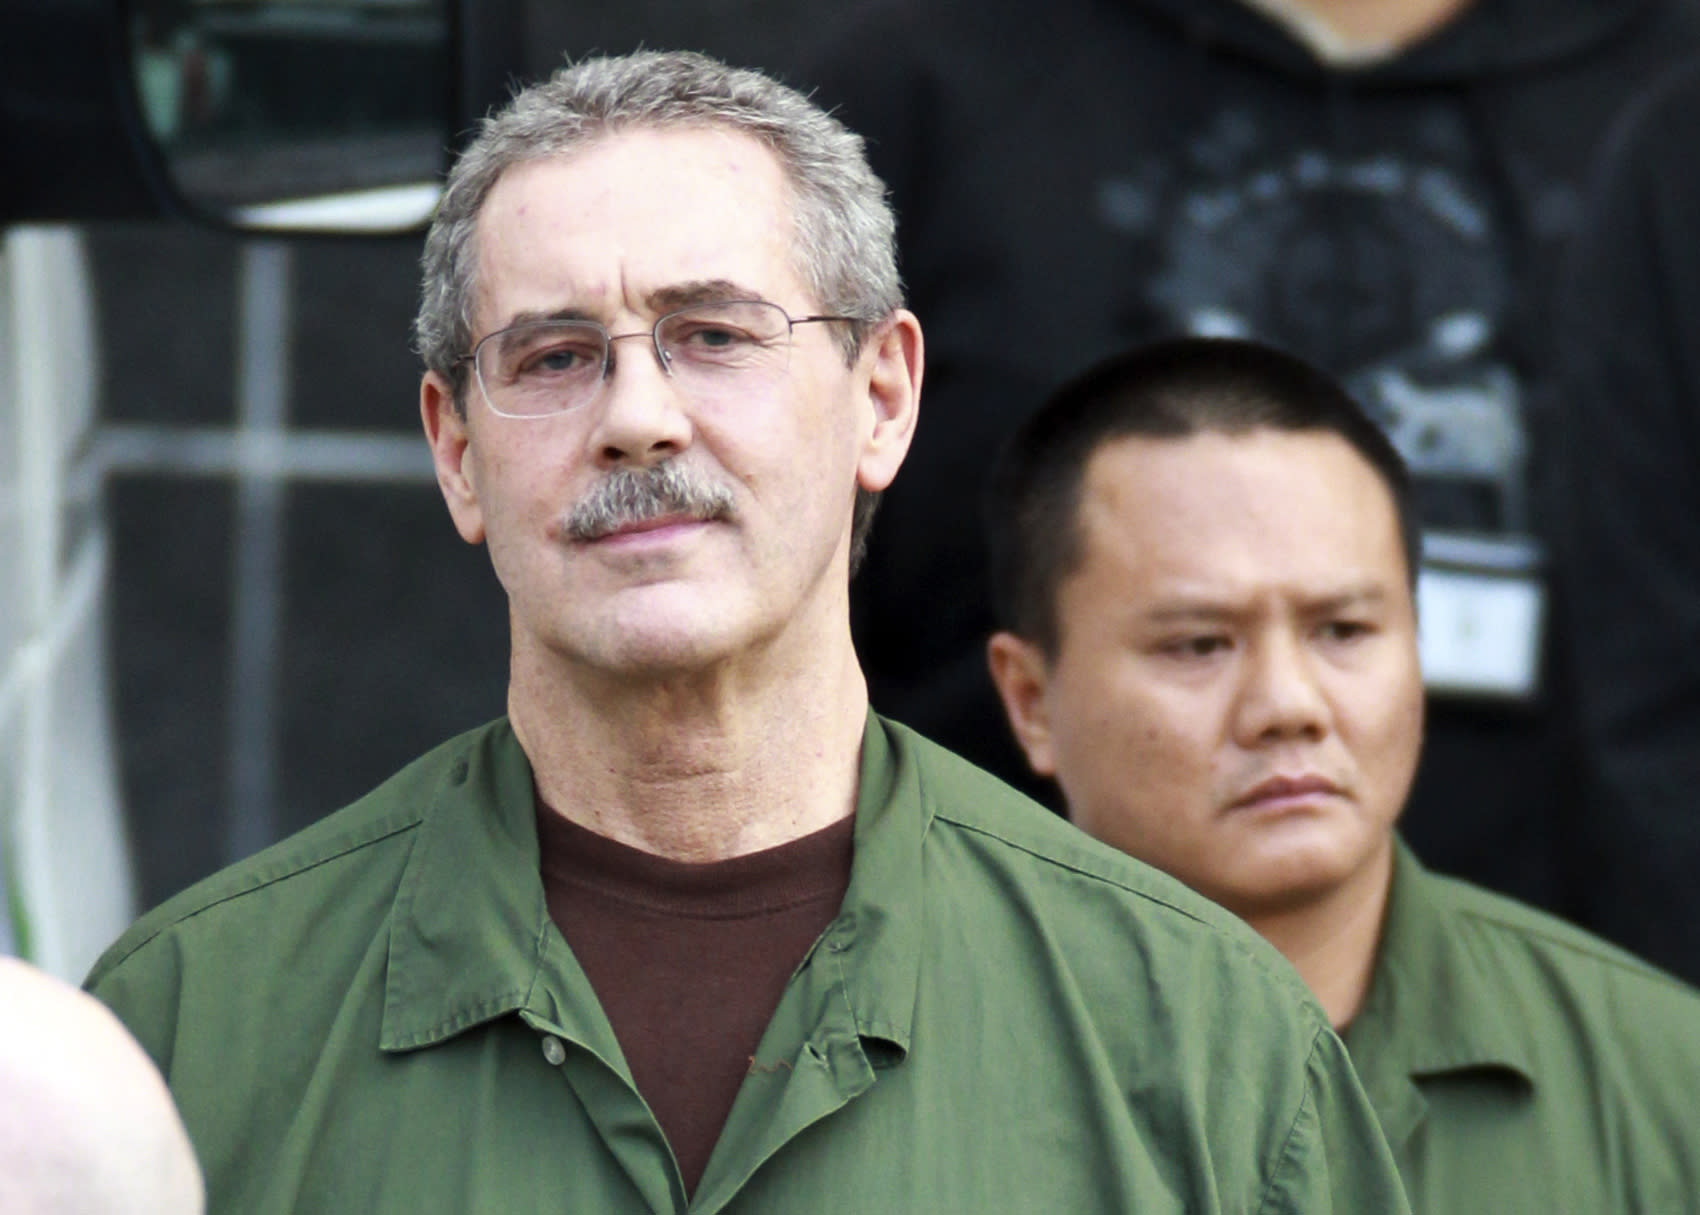 FILE - In this March 6, 2012 file photo, R. Allen Stanford leaves the Bob Casey Federal Courthouse in Houston. Stanford, once considered one of the wealthiest people in the U.S., with a financial empire that spanned the Americas, was convicted on charges he bilked investors out of more than $7 billion. The 62-year-old is set to be sentenced by a Houston federal judge on Thursday, June 14, 2012. (AP Photo/Houston Chronicle, Nick de la Torre, File)